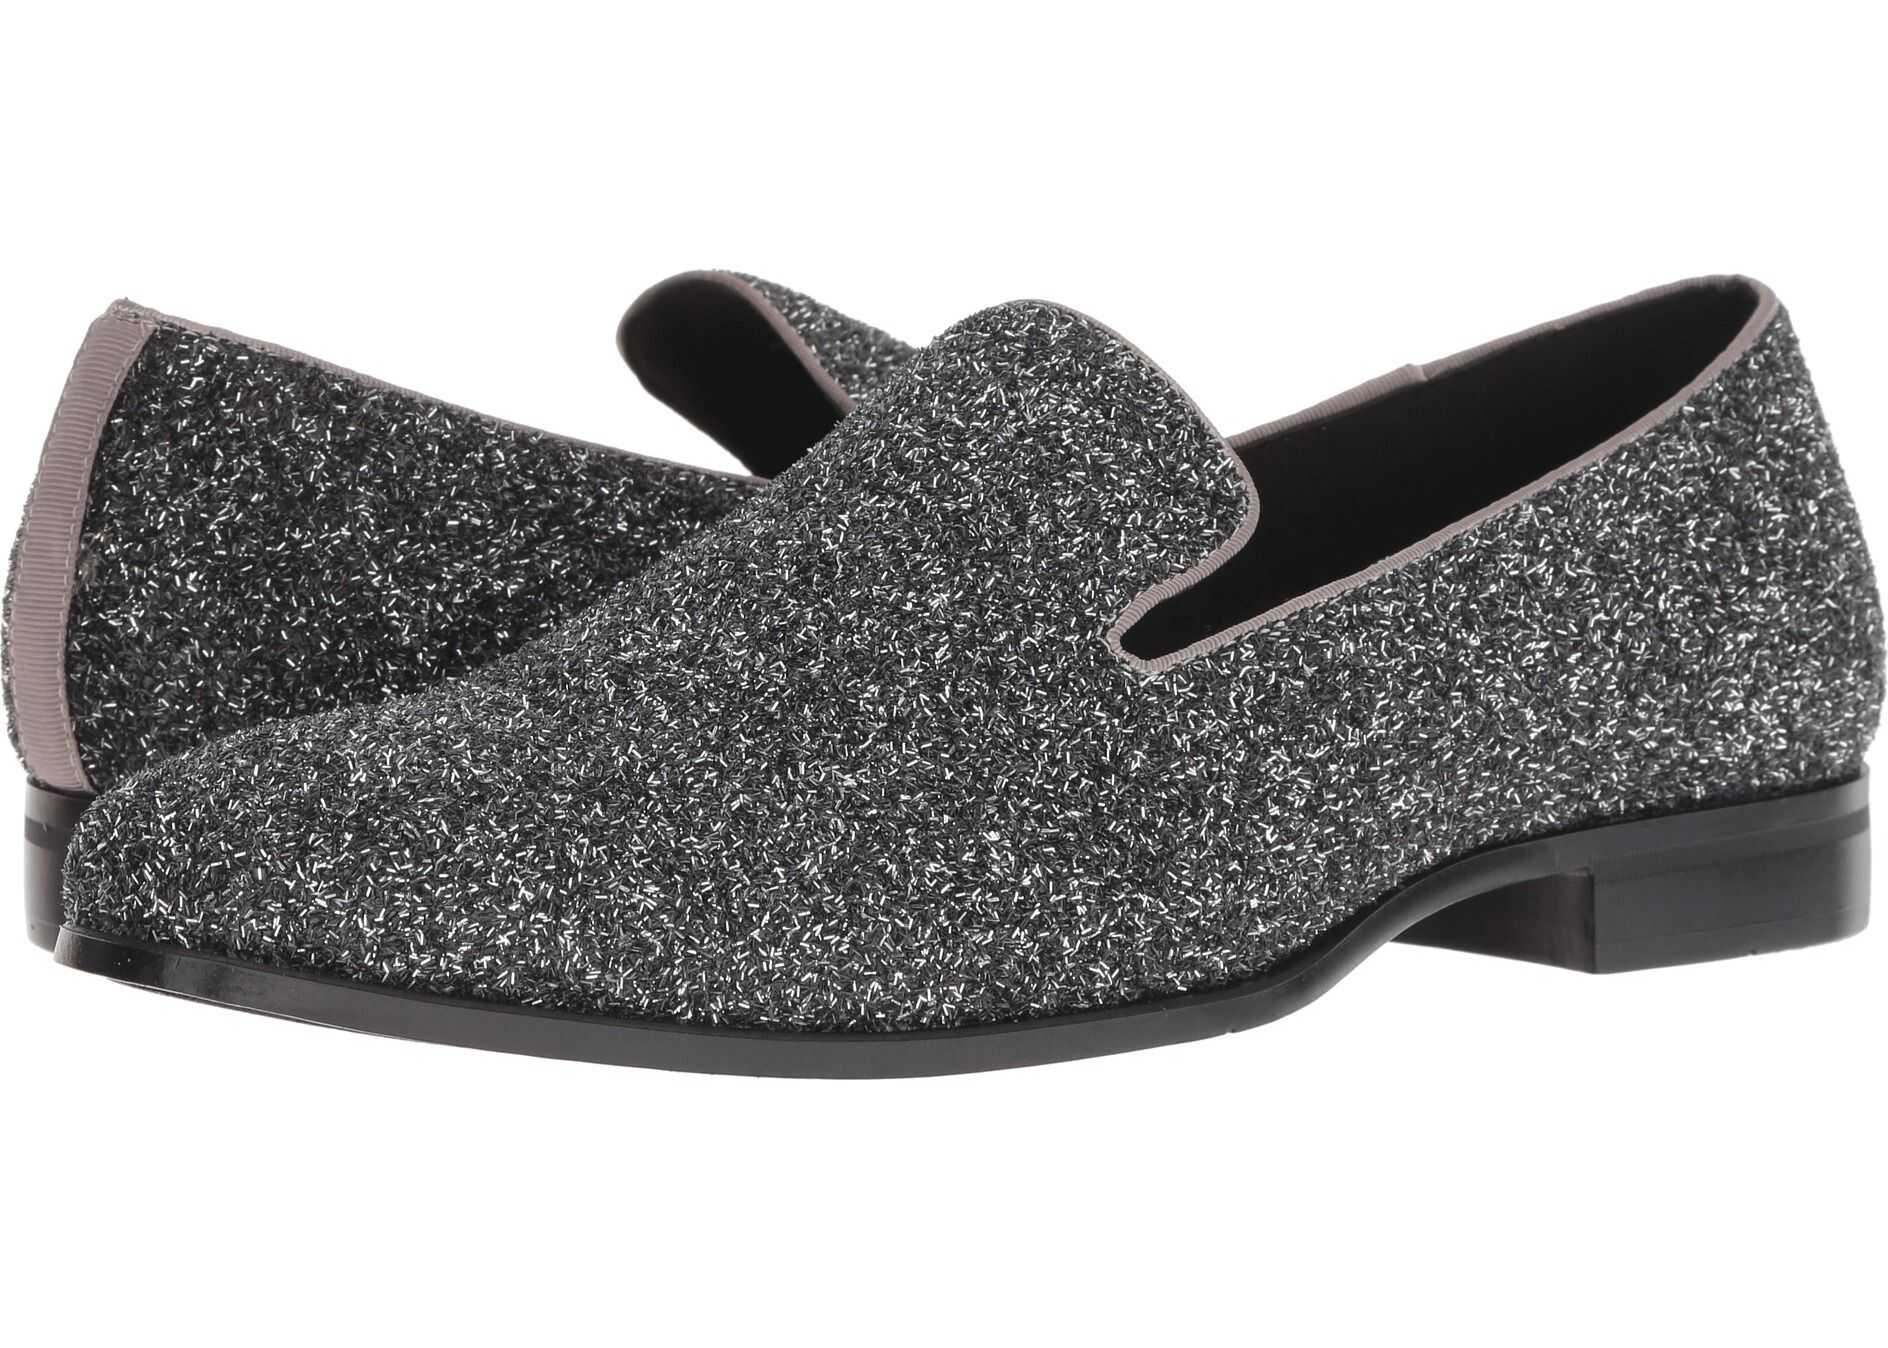 Stacy Adams Swank Glitter Loafer Silver